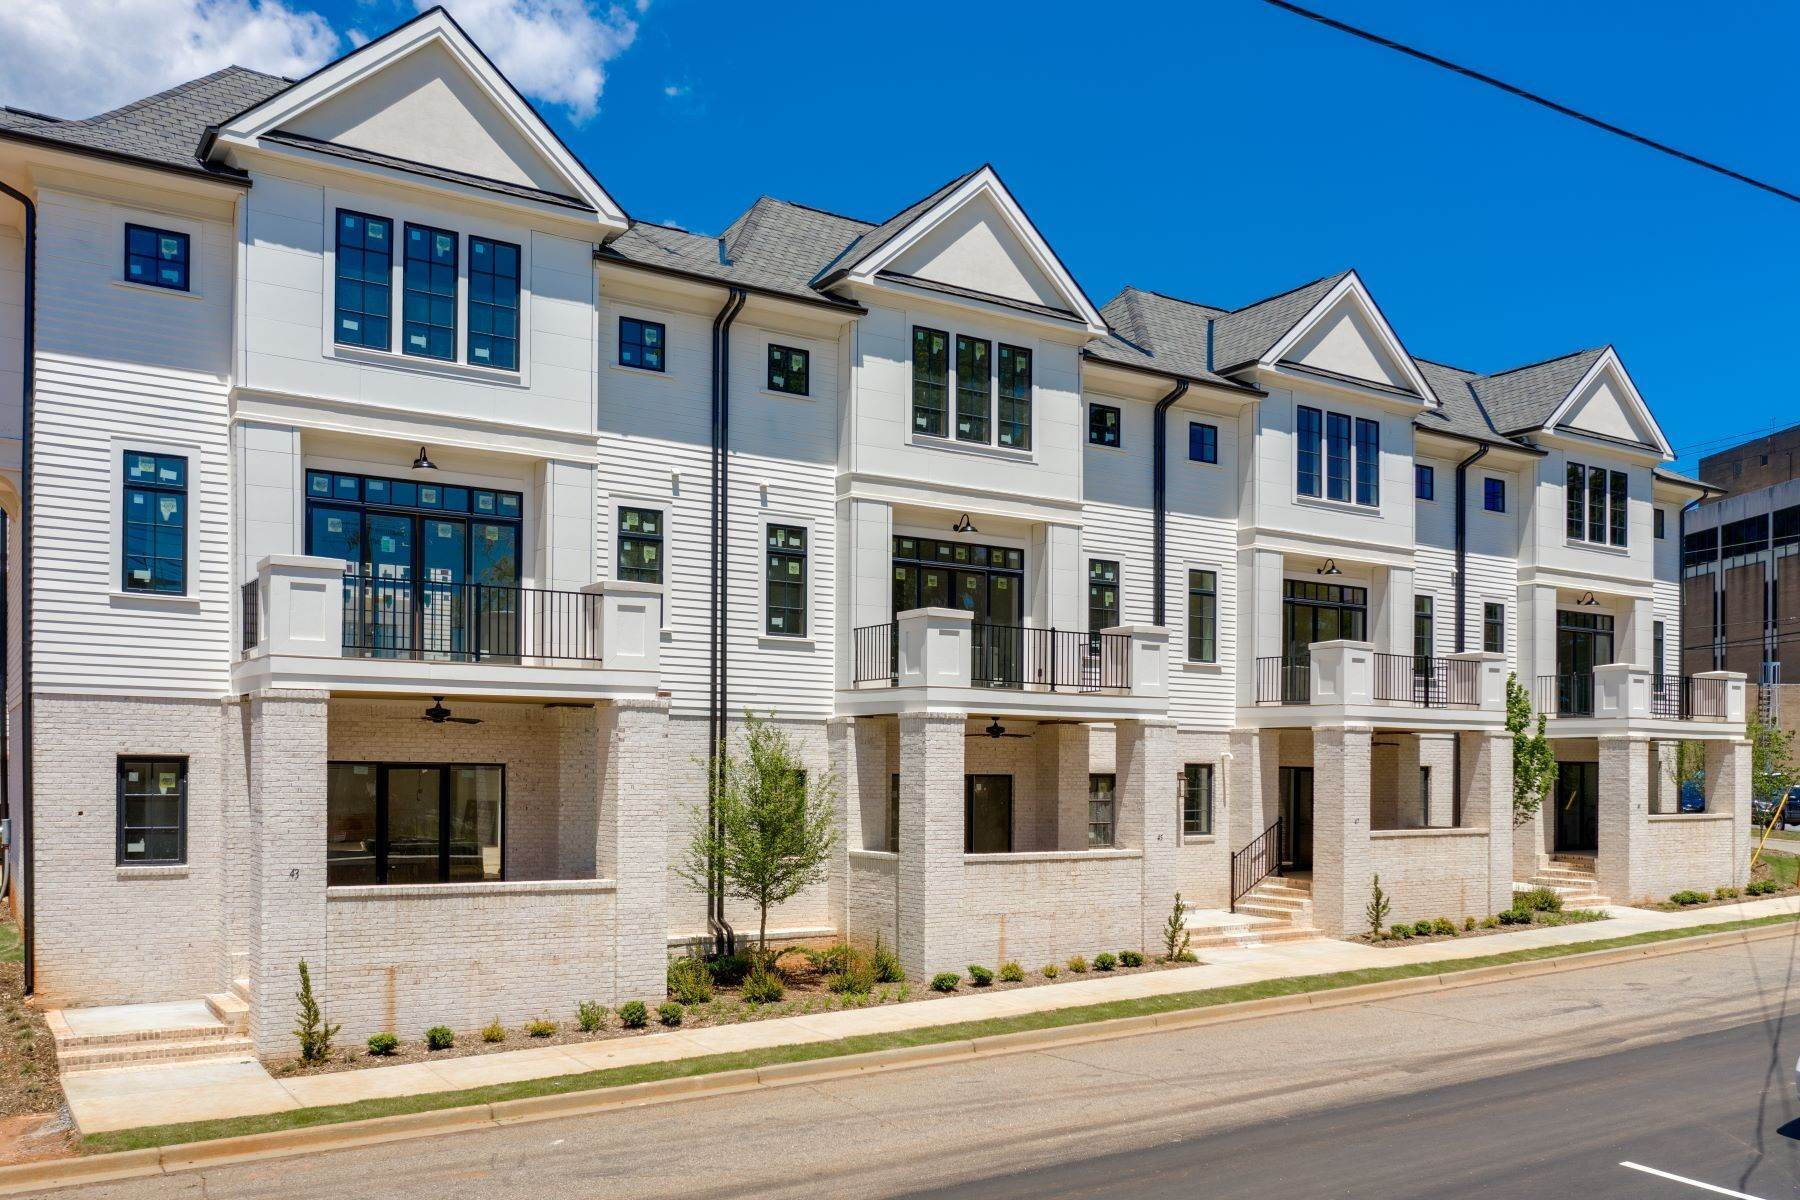 townhouses for Sale at 45 Thruston Street, Greenville, SC 29601 Greenville, SC 29601